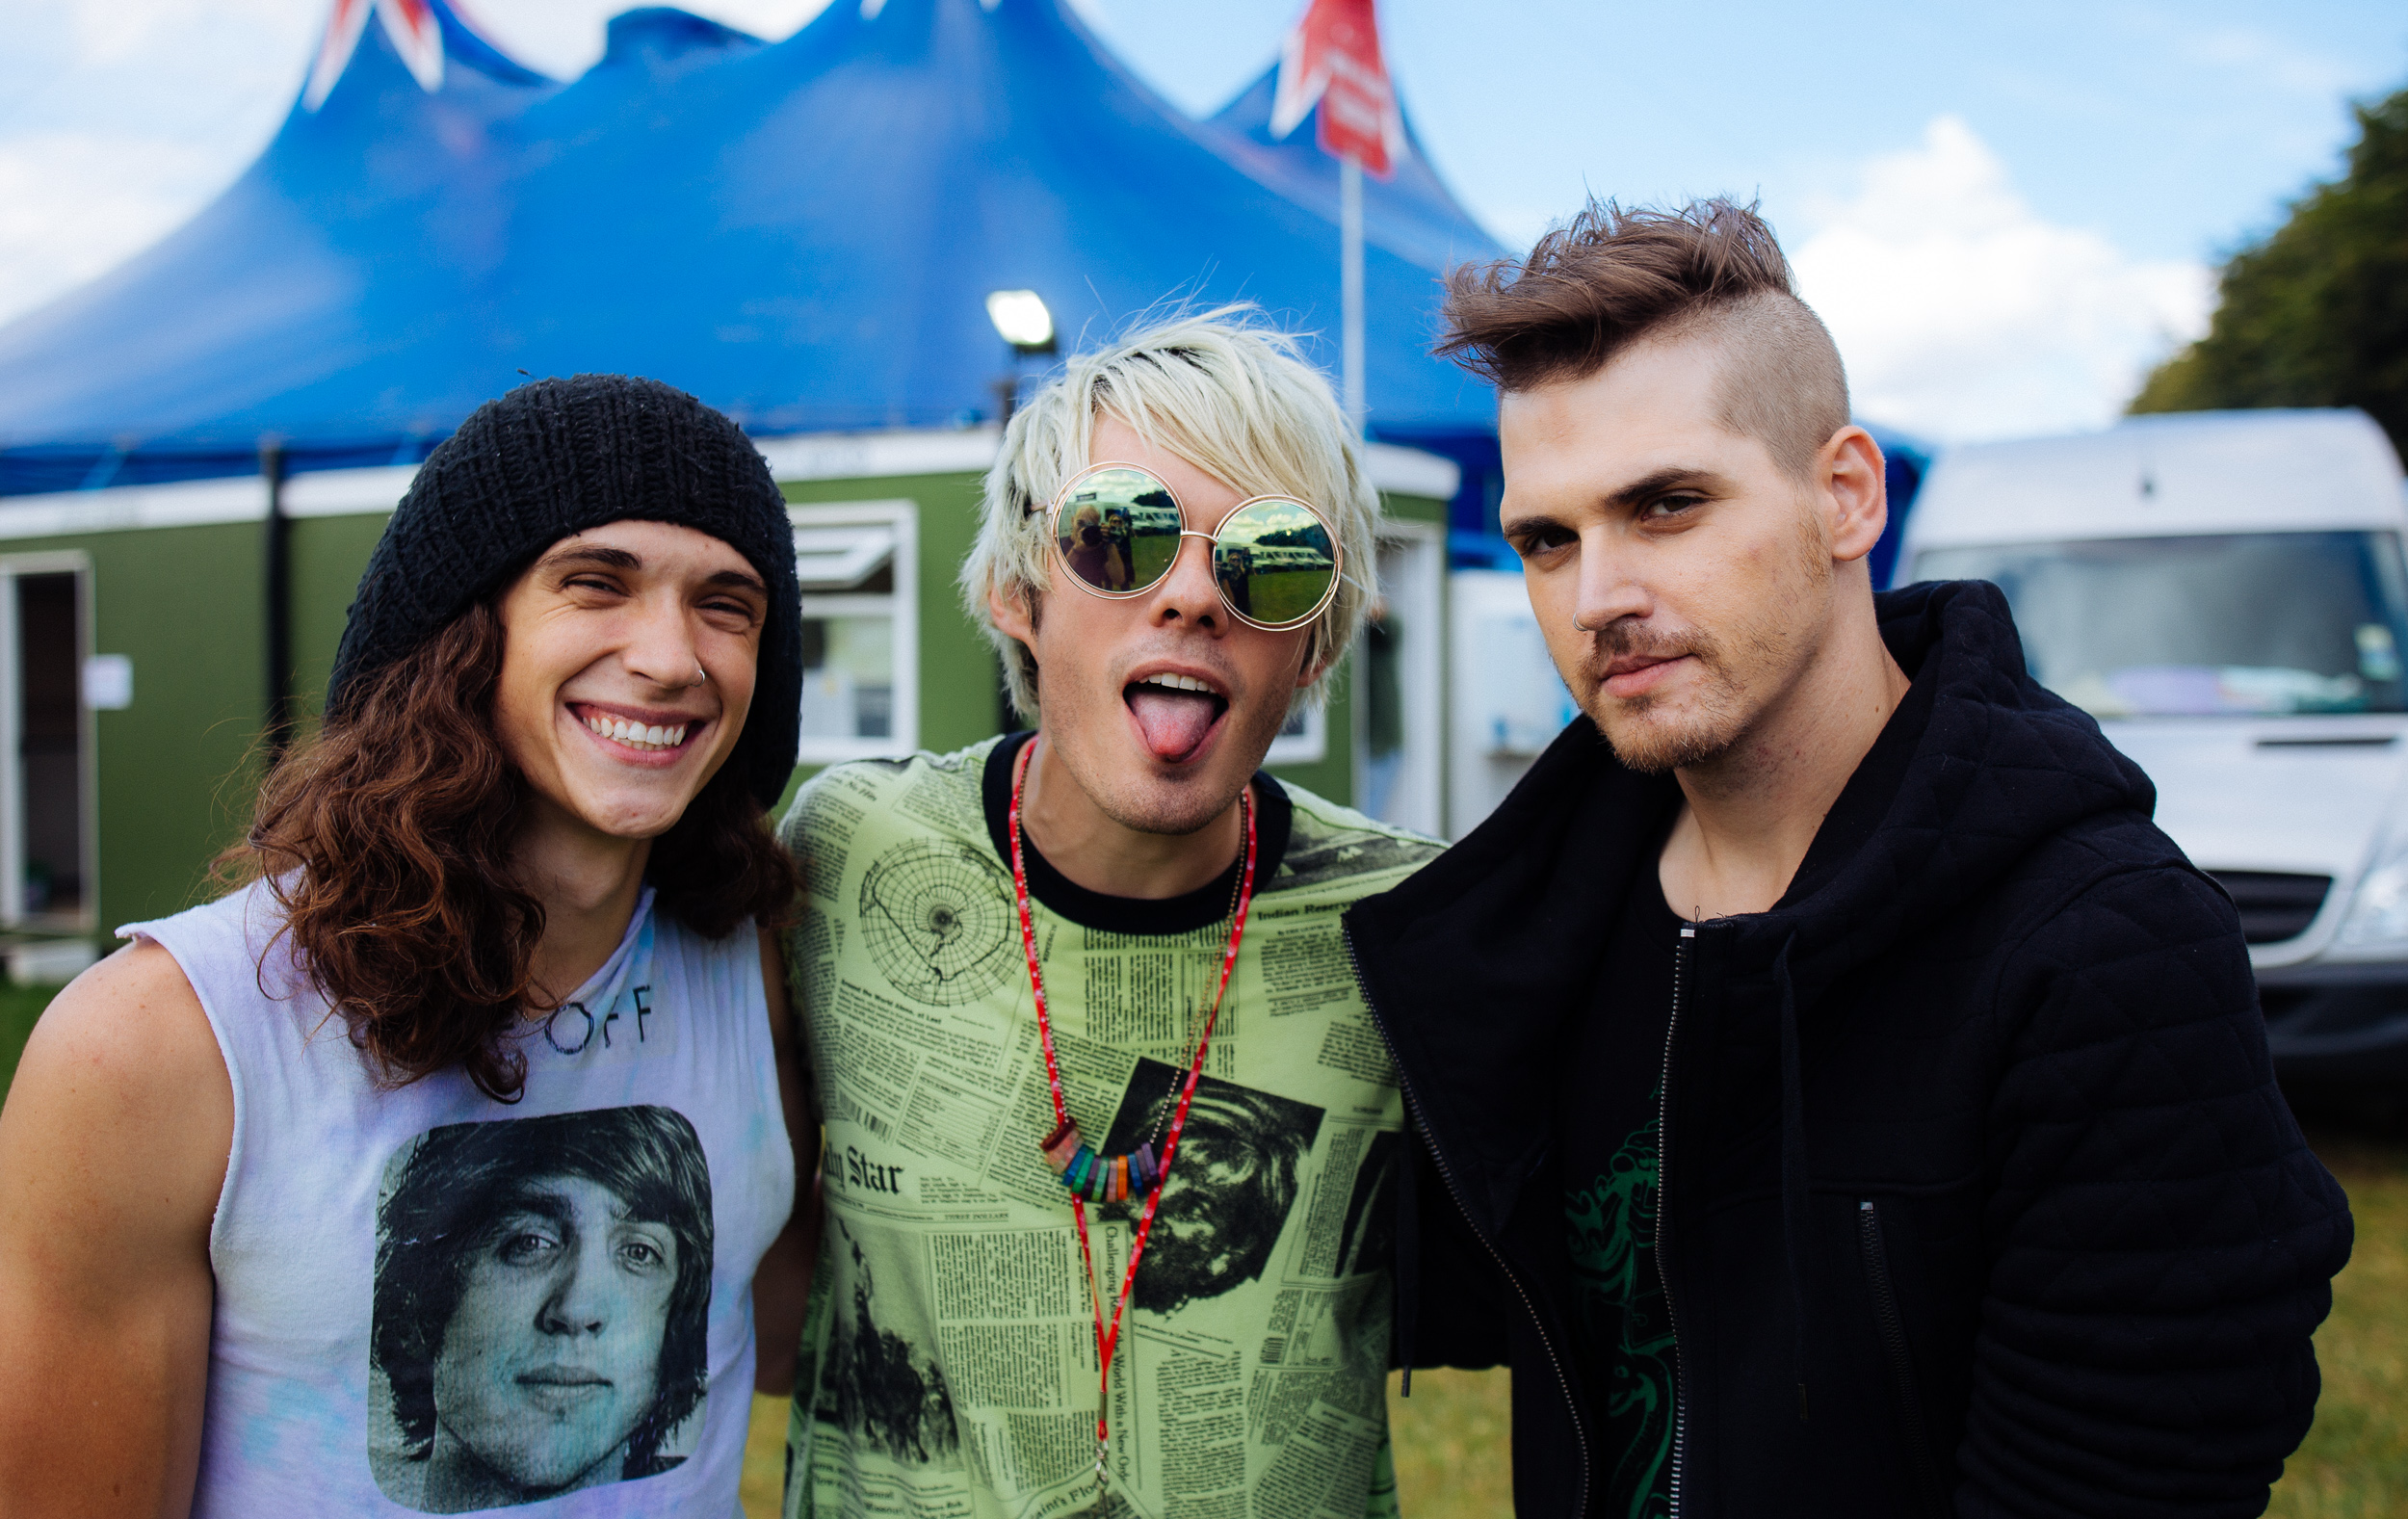 Waterparks  x Mikey Way at Leeds Festival by Adam Elmakias